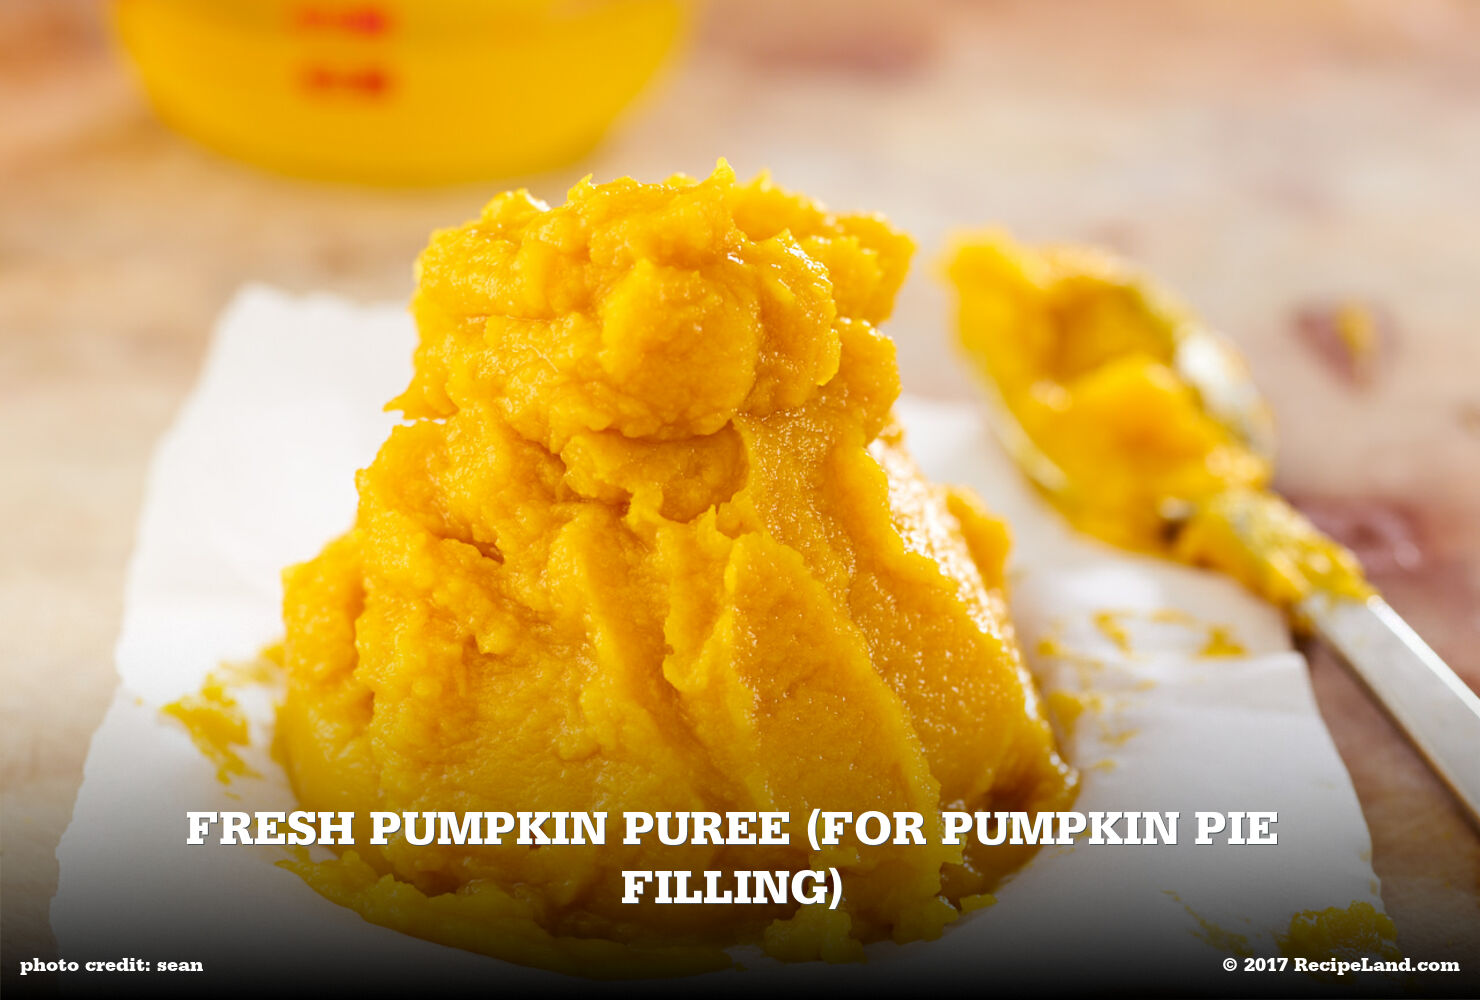 Fresh Pumpkin Puree (for Pumpkin Pie Filling)